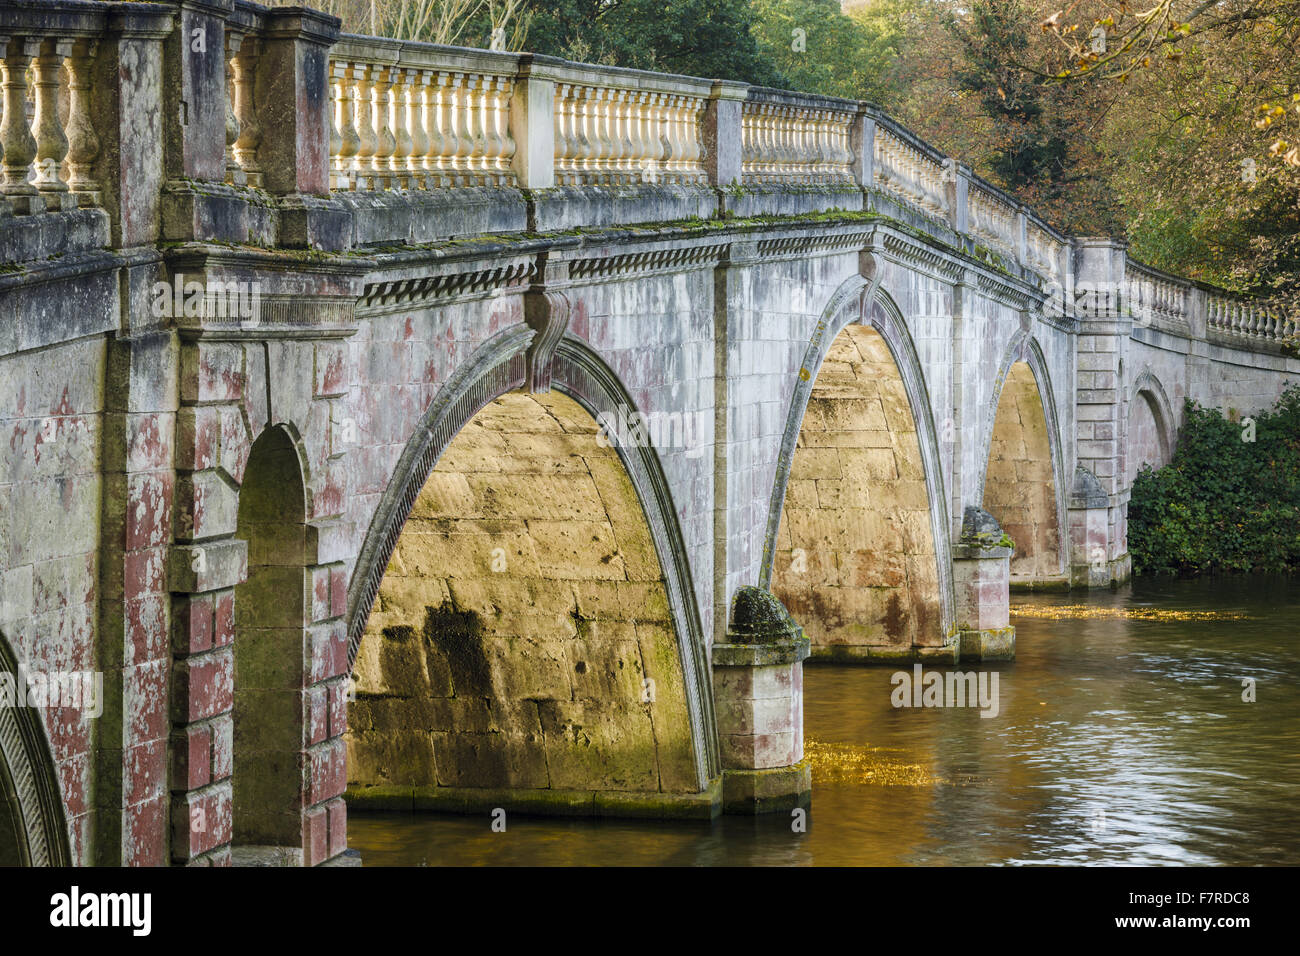 View of the bridge at Clumber Park, built in the mid 18th century, Nottinghamshire. - Stock Image